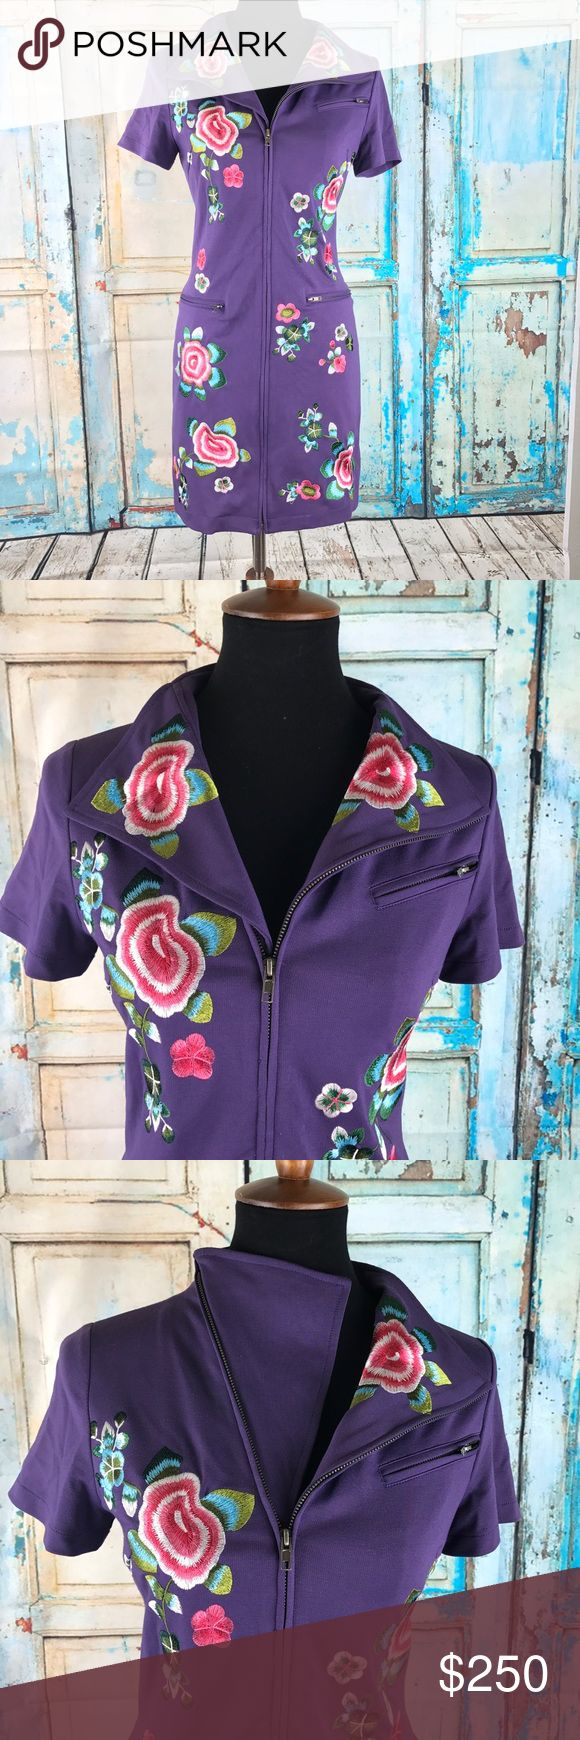 """KENZO Embroidered Dbl Purpose Neck Line Sz M $545 KENZO Embroidered Flower Dress 100%  Double Purpose Neck Line Sz M $545  Measurements Laying Flat and Unstretched:  Armpit to Armpit: 17"""" Length 35""""   Inventory# W2 Kenzo Dresses Midi"""